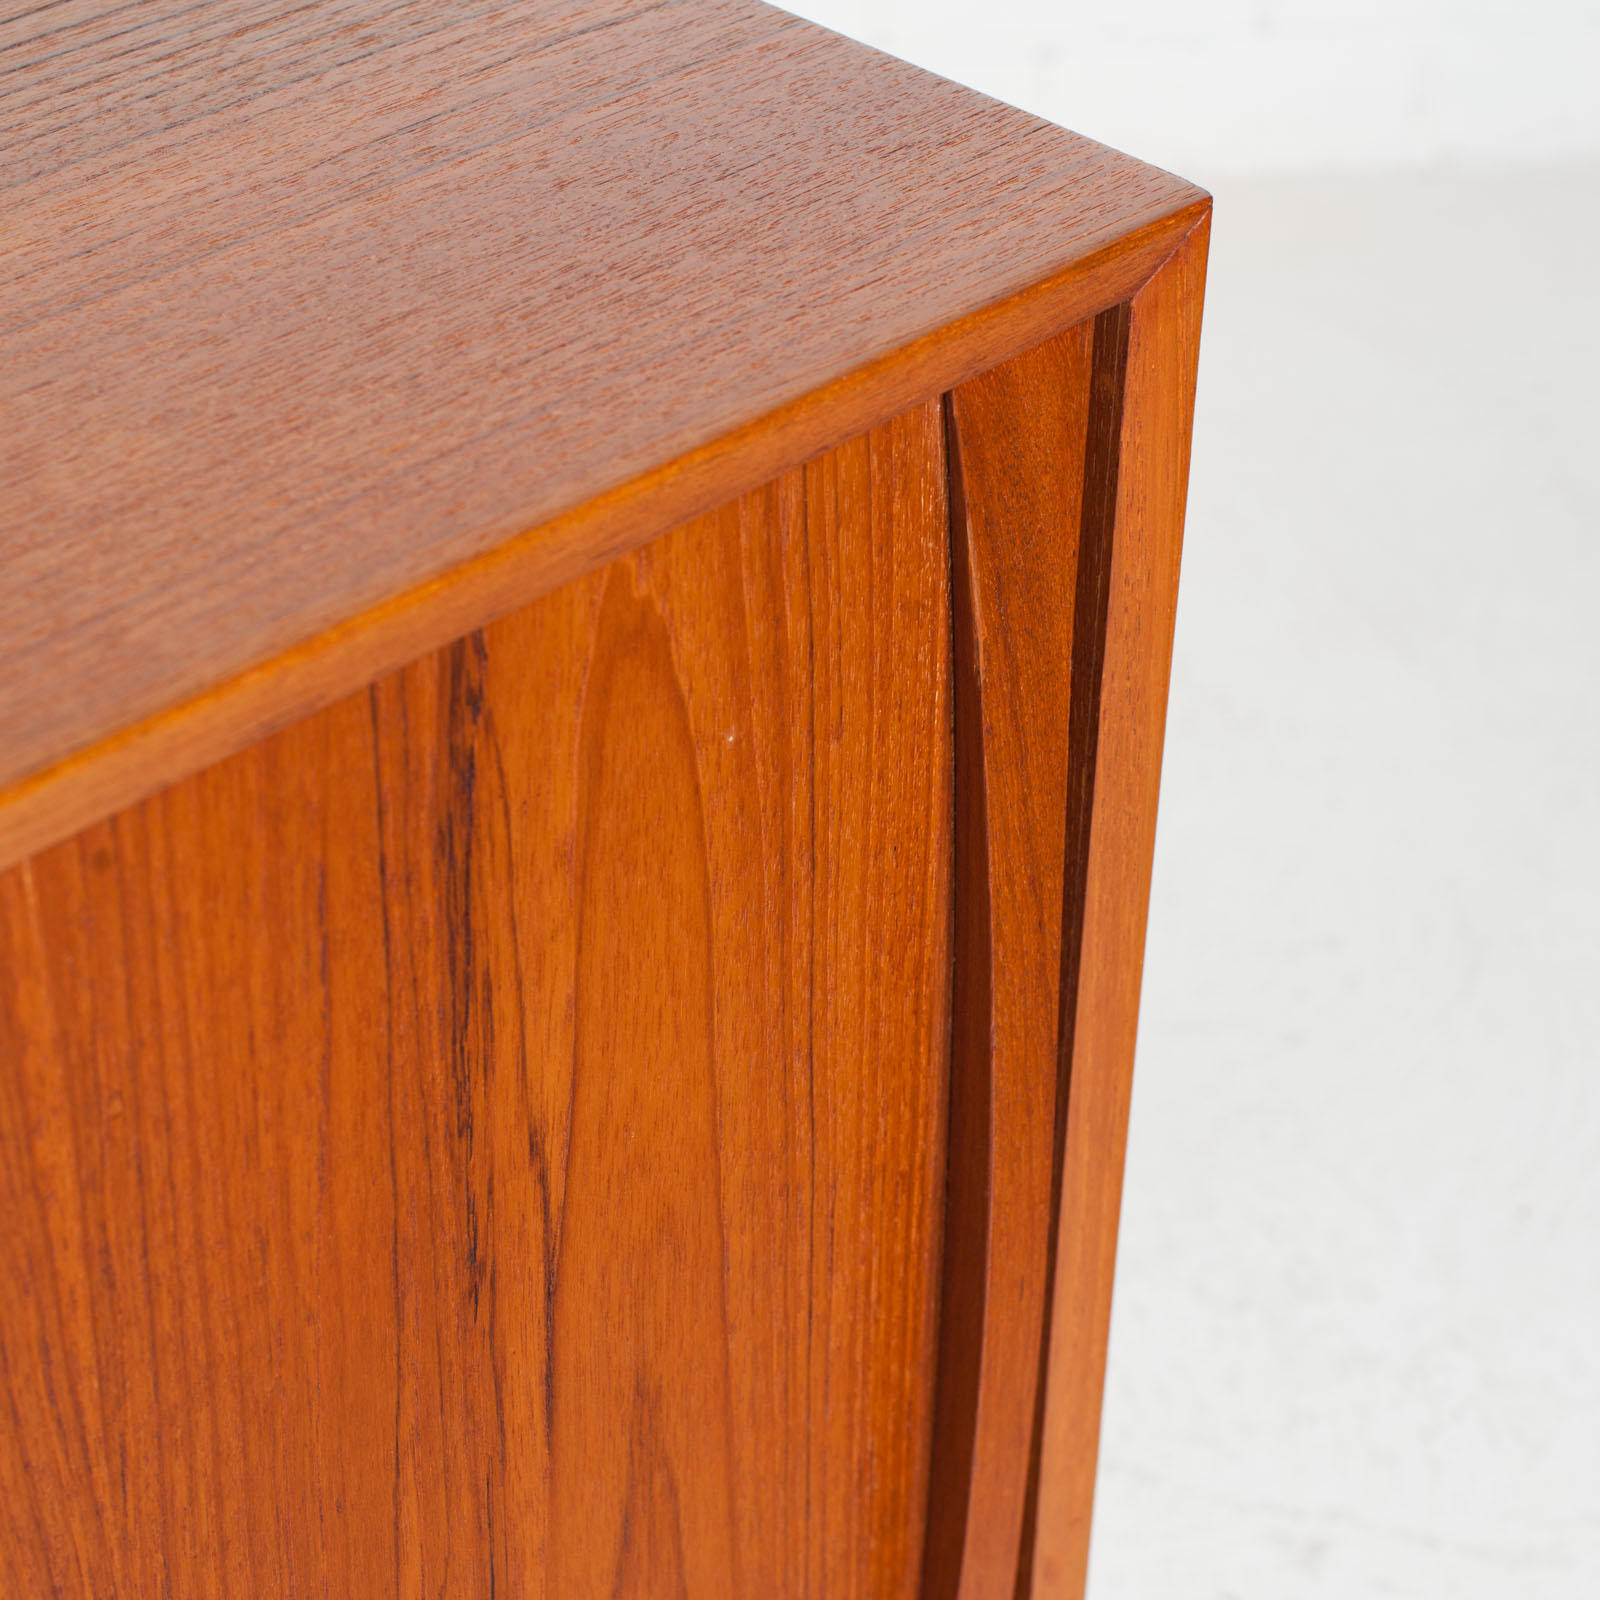 Sideboard In Teak With Two Sliding Drawers 1960s Denmark 08